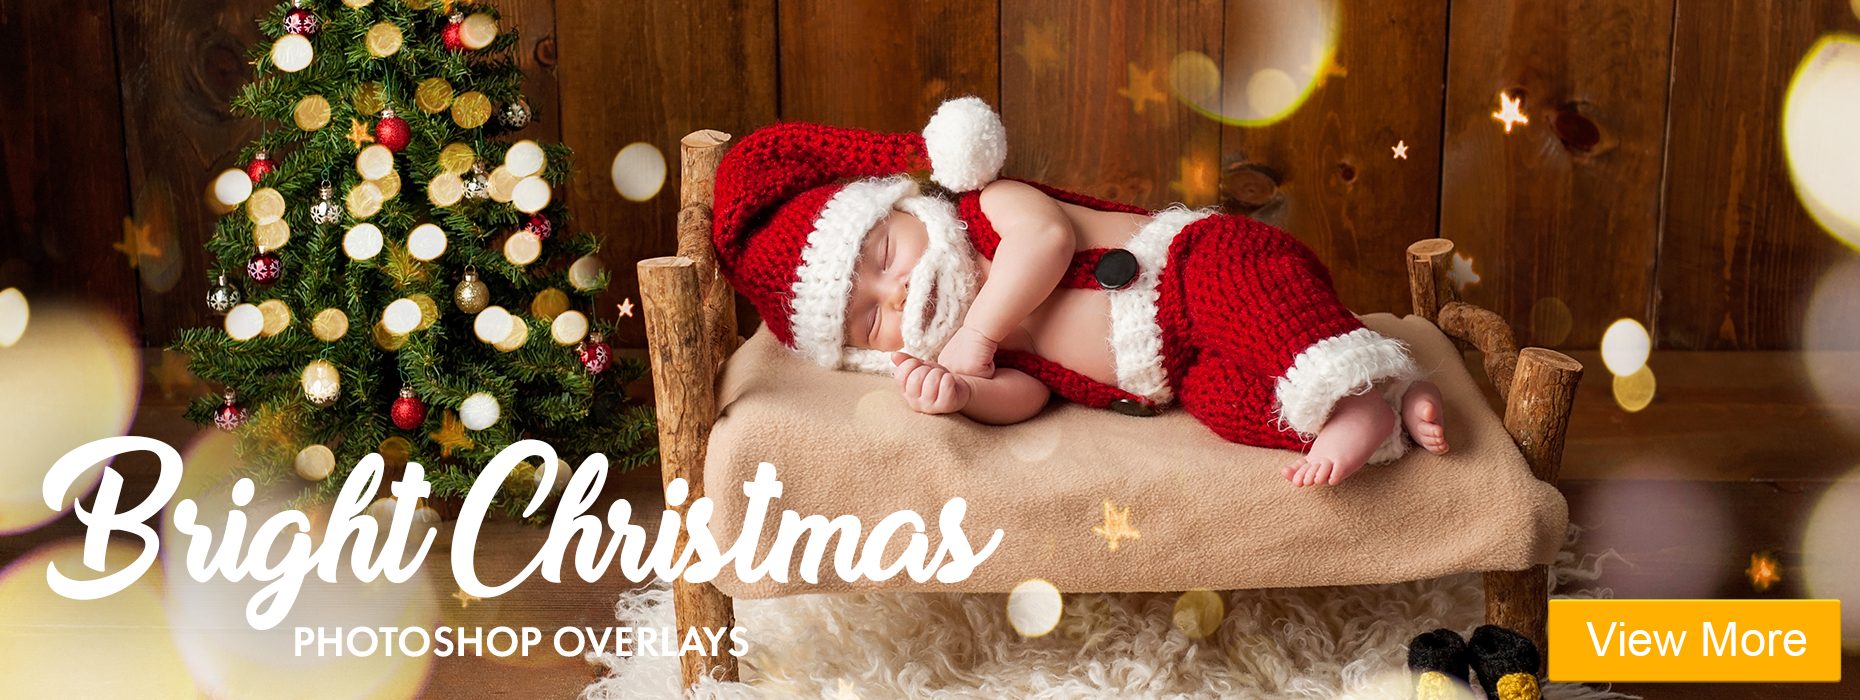 free snow overlay for photoshop christmas light ligthroom bokeh overlays banner baby